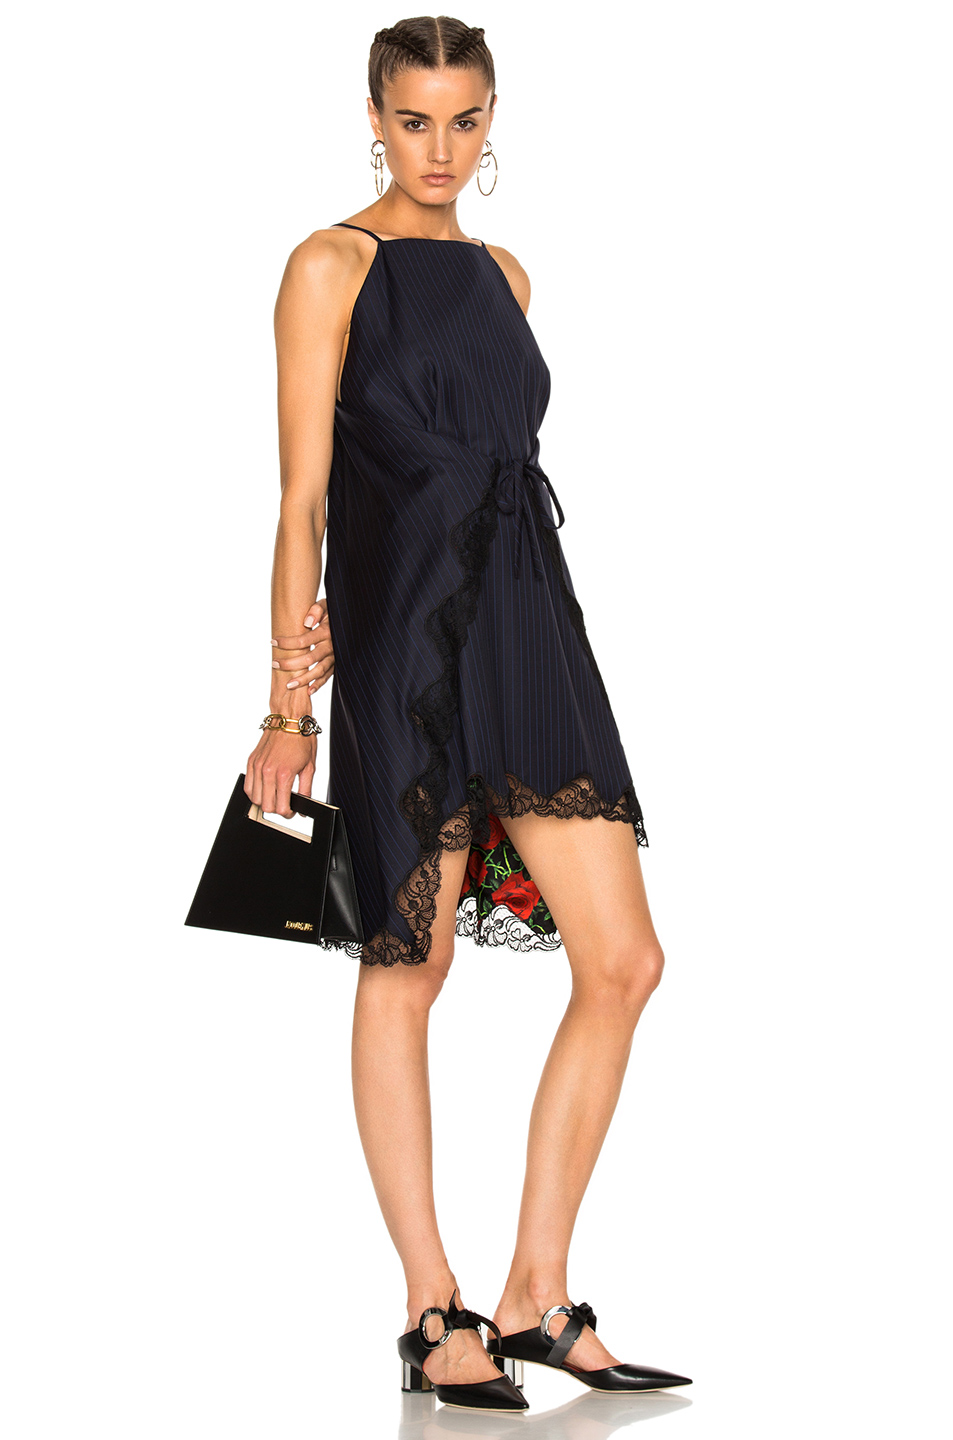 Photo of Alexander Wang Flared A-Line Apron Dress in Black,Blue,Floral,Stripes online sales